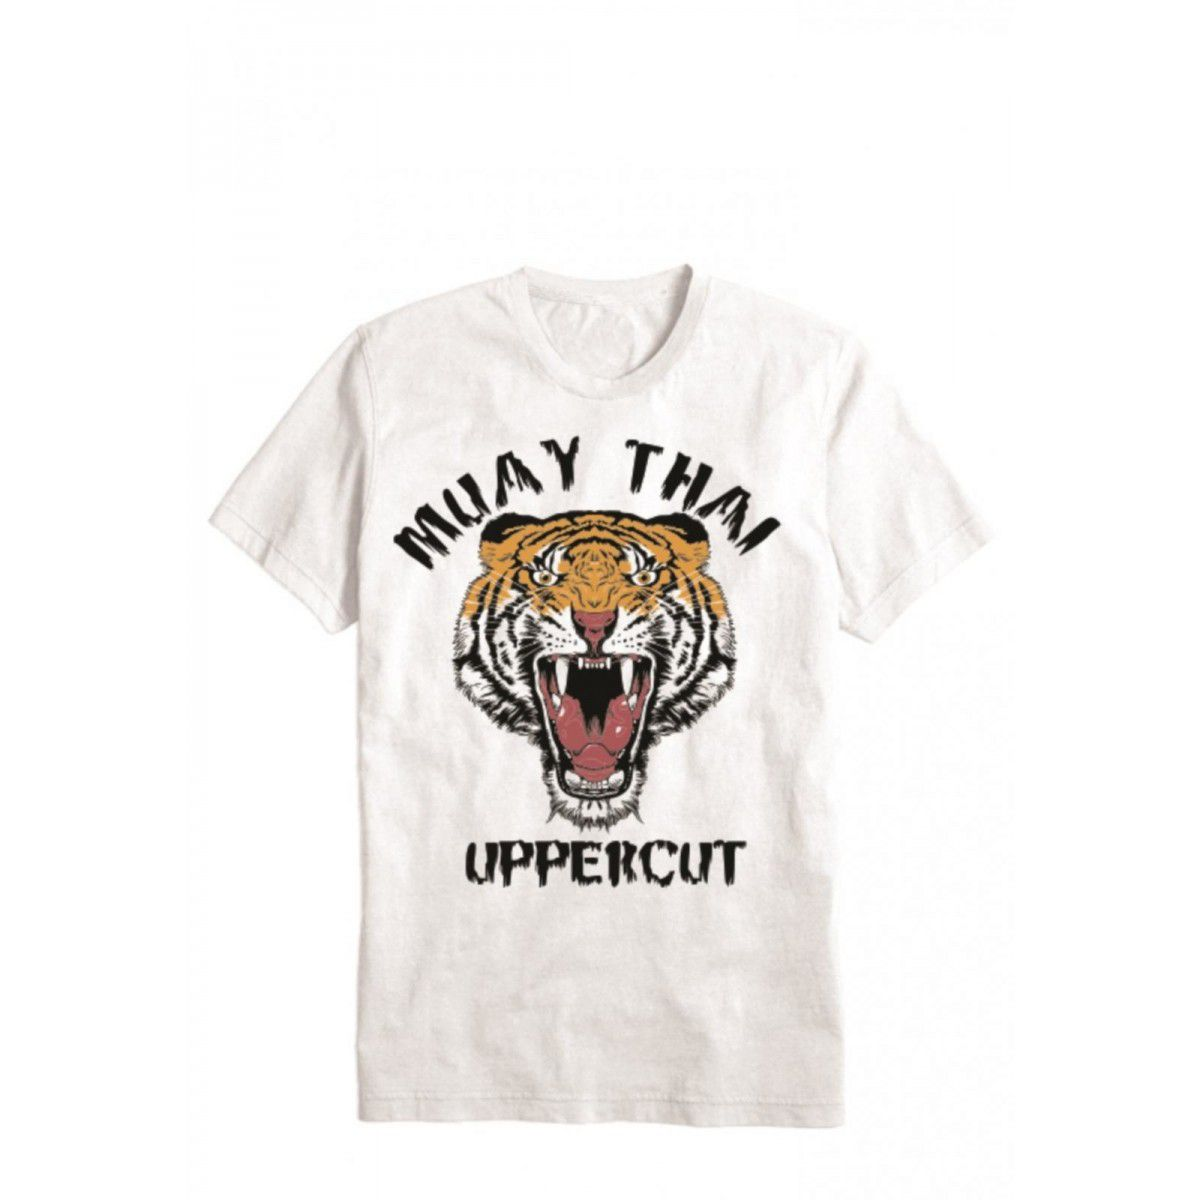 Camisa/Camiseta-Muay Thai - Tiger- Uppercut .